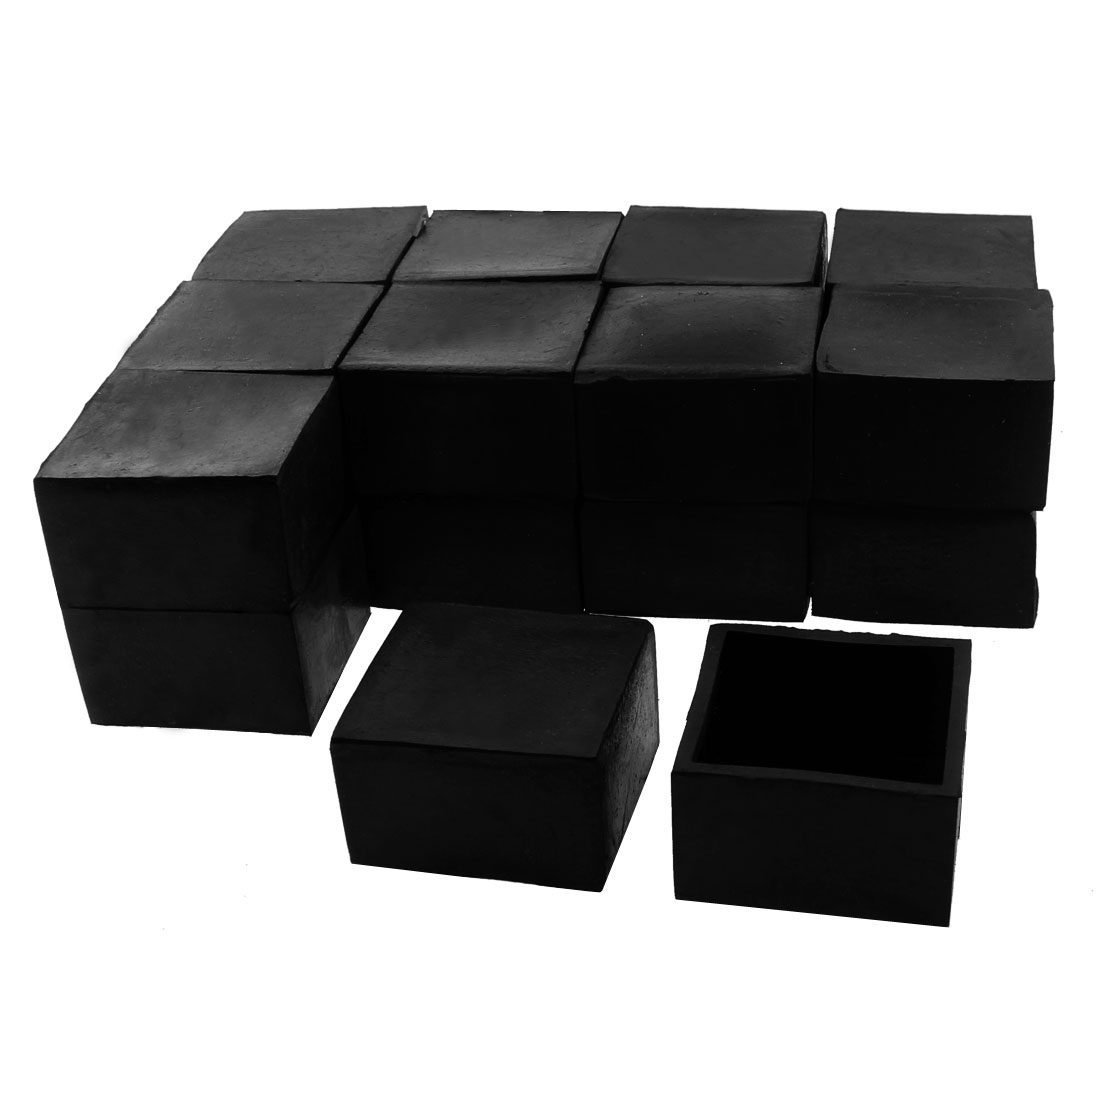 50mm x 50mm Square Shaped Furniture Table Chair Foot Leg Rubber End Cap Cover Black 20pcs